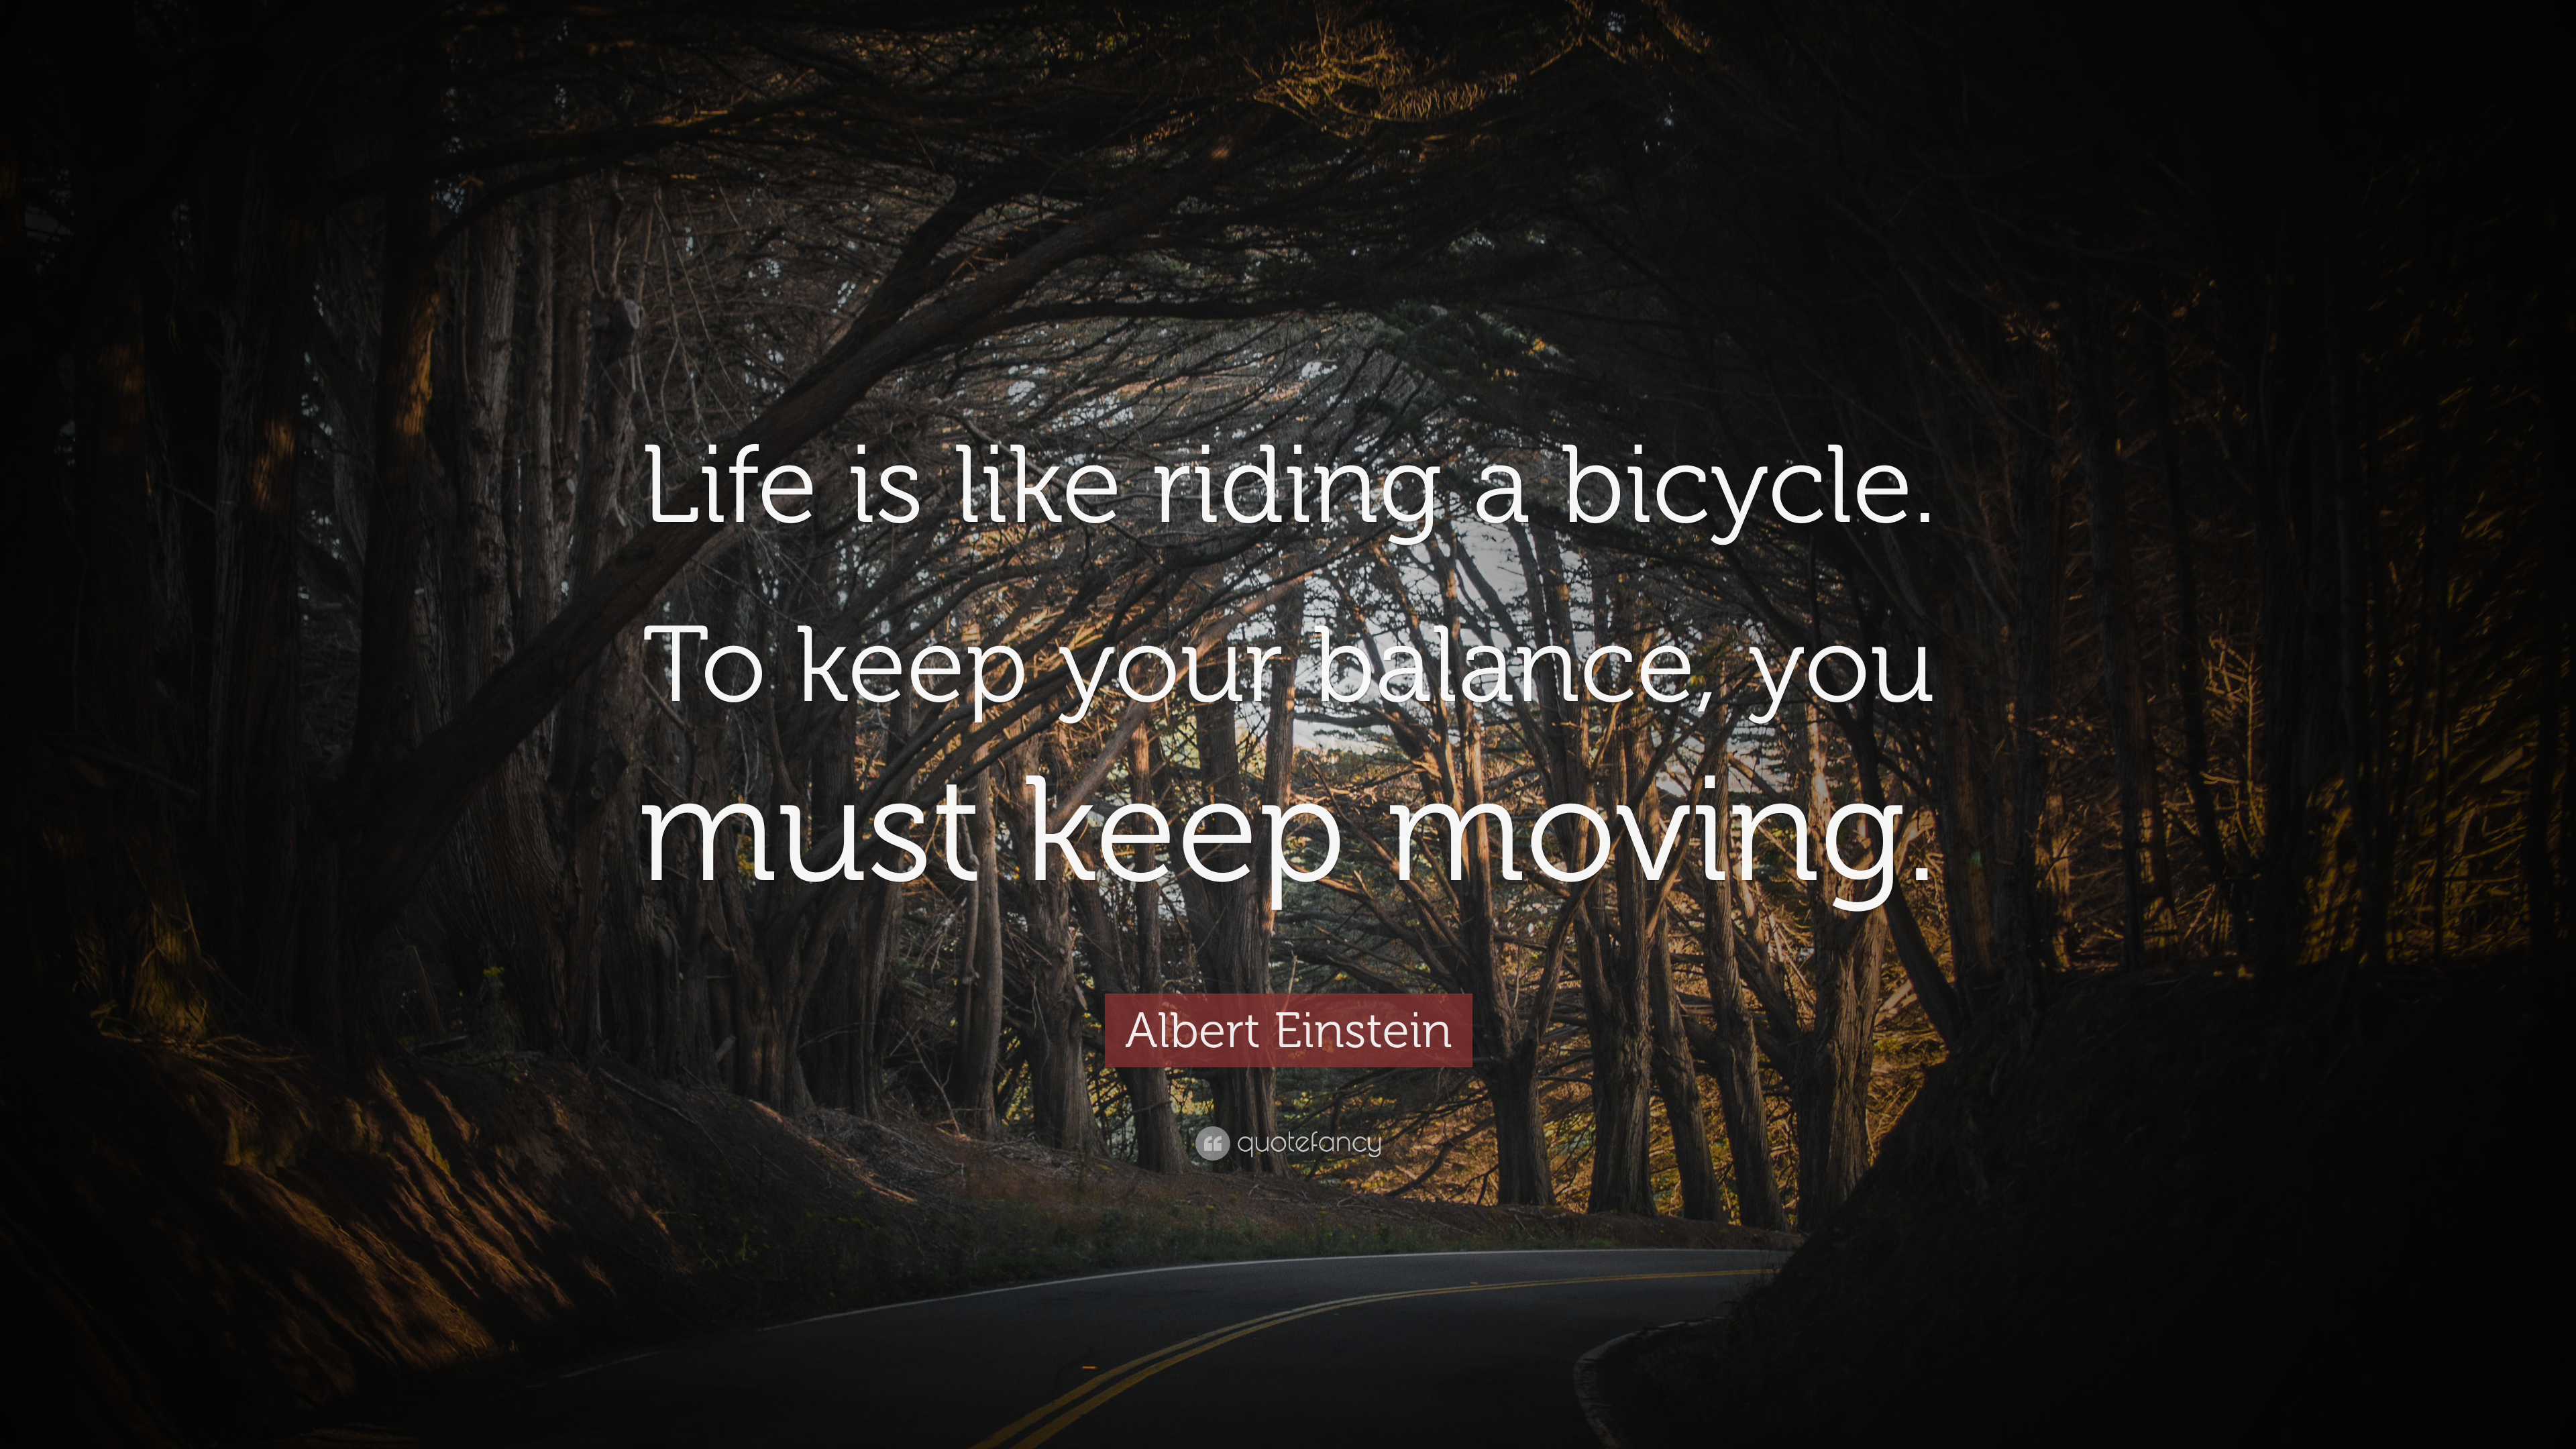 Moving On Quotes: U201cLife Is Like Riding A Bicycle. To Keep Your Balance